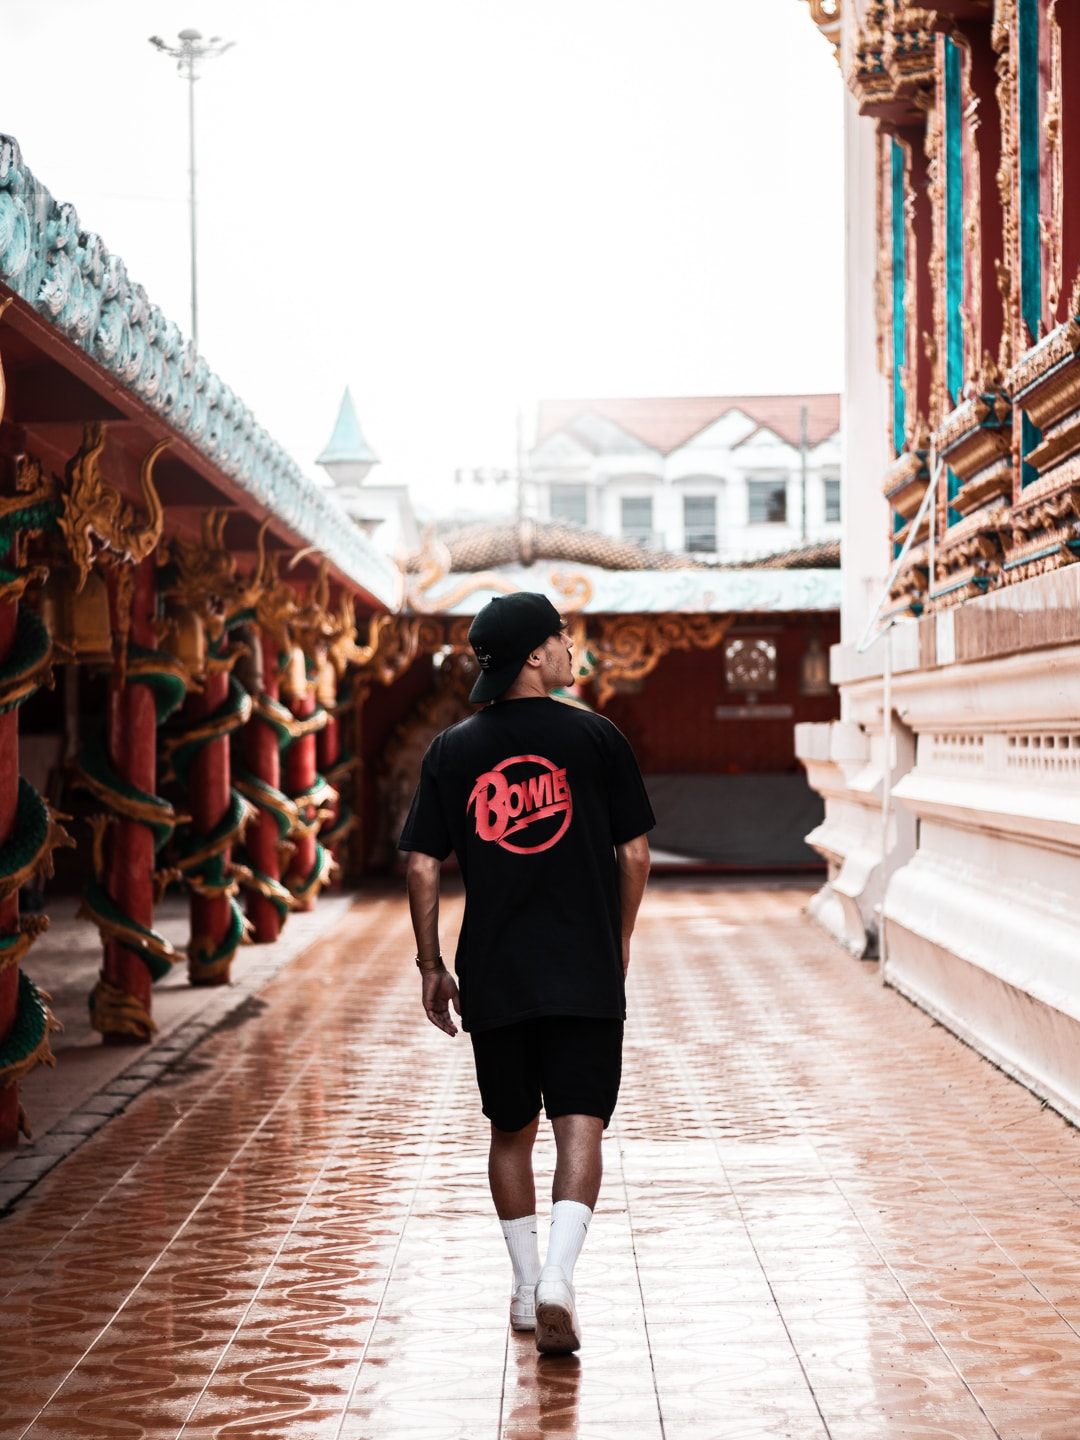 Athos Abreu walks into a temple in Phuket, Thailand and looks up to the right.